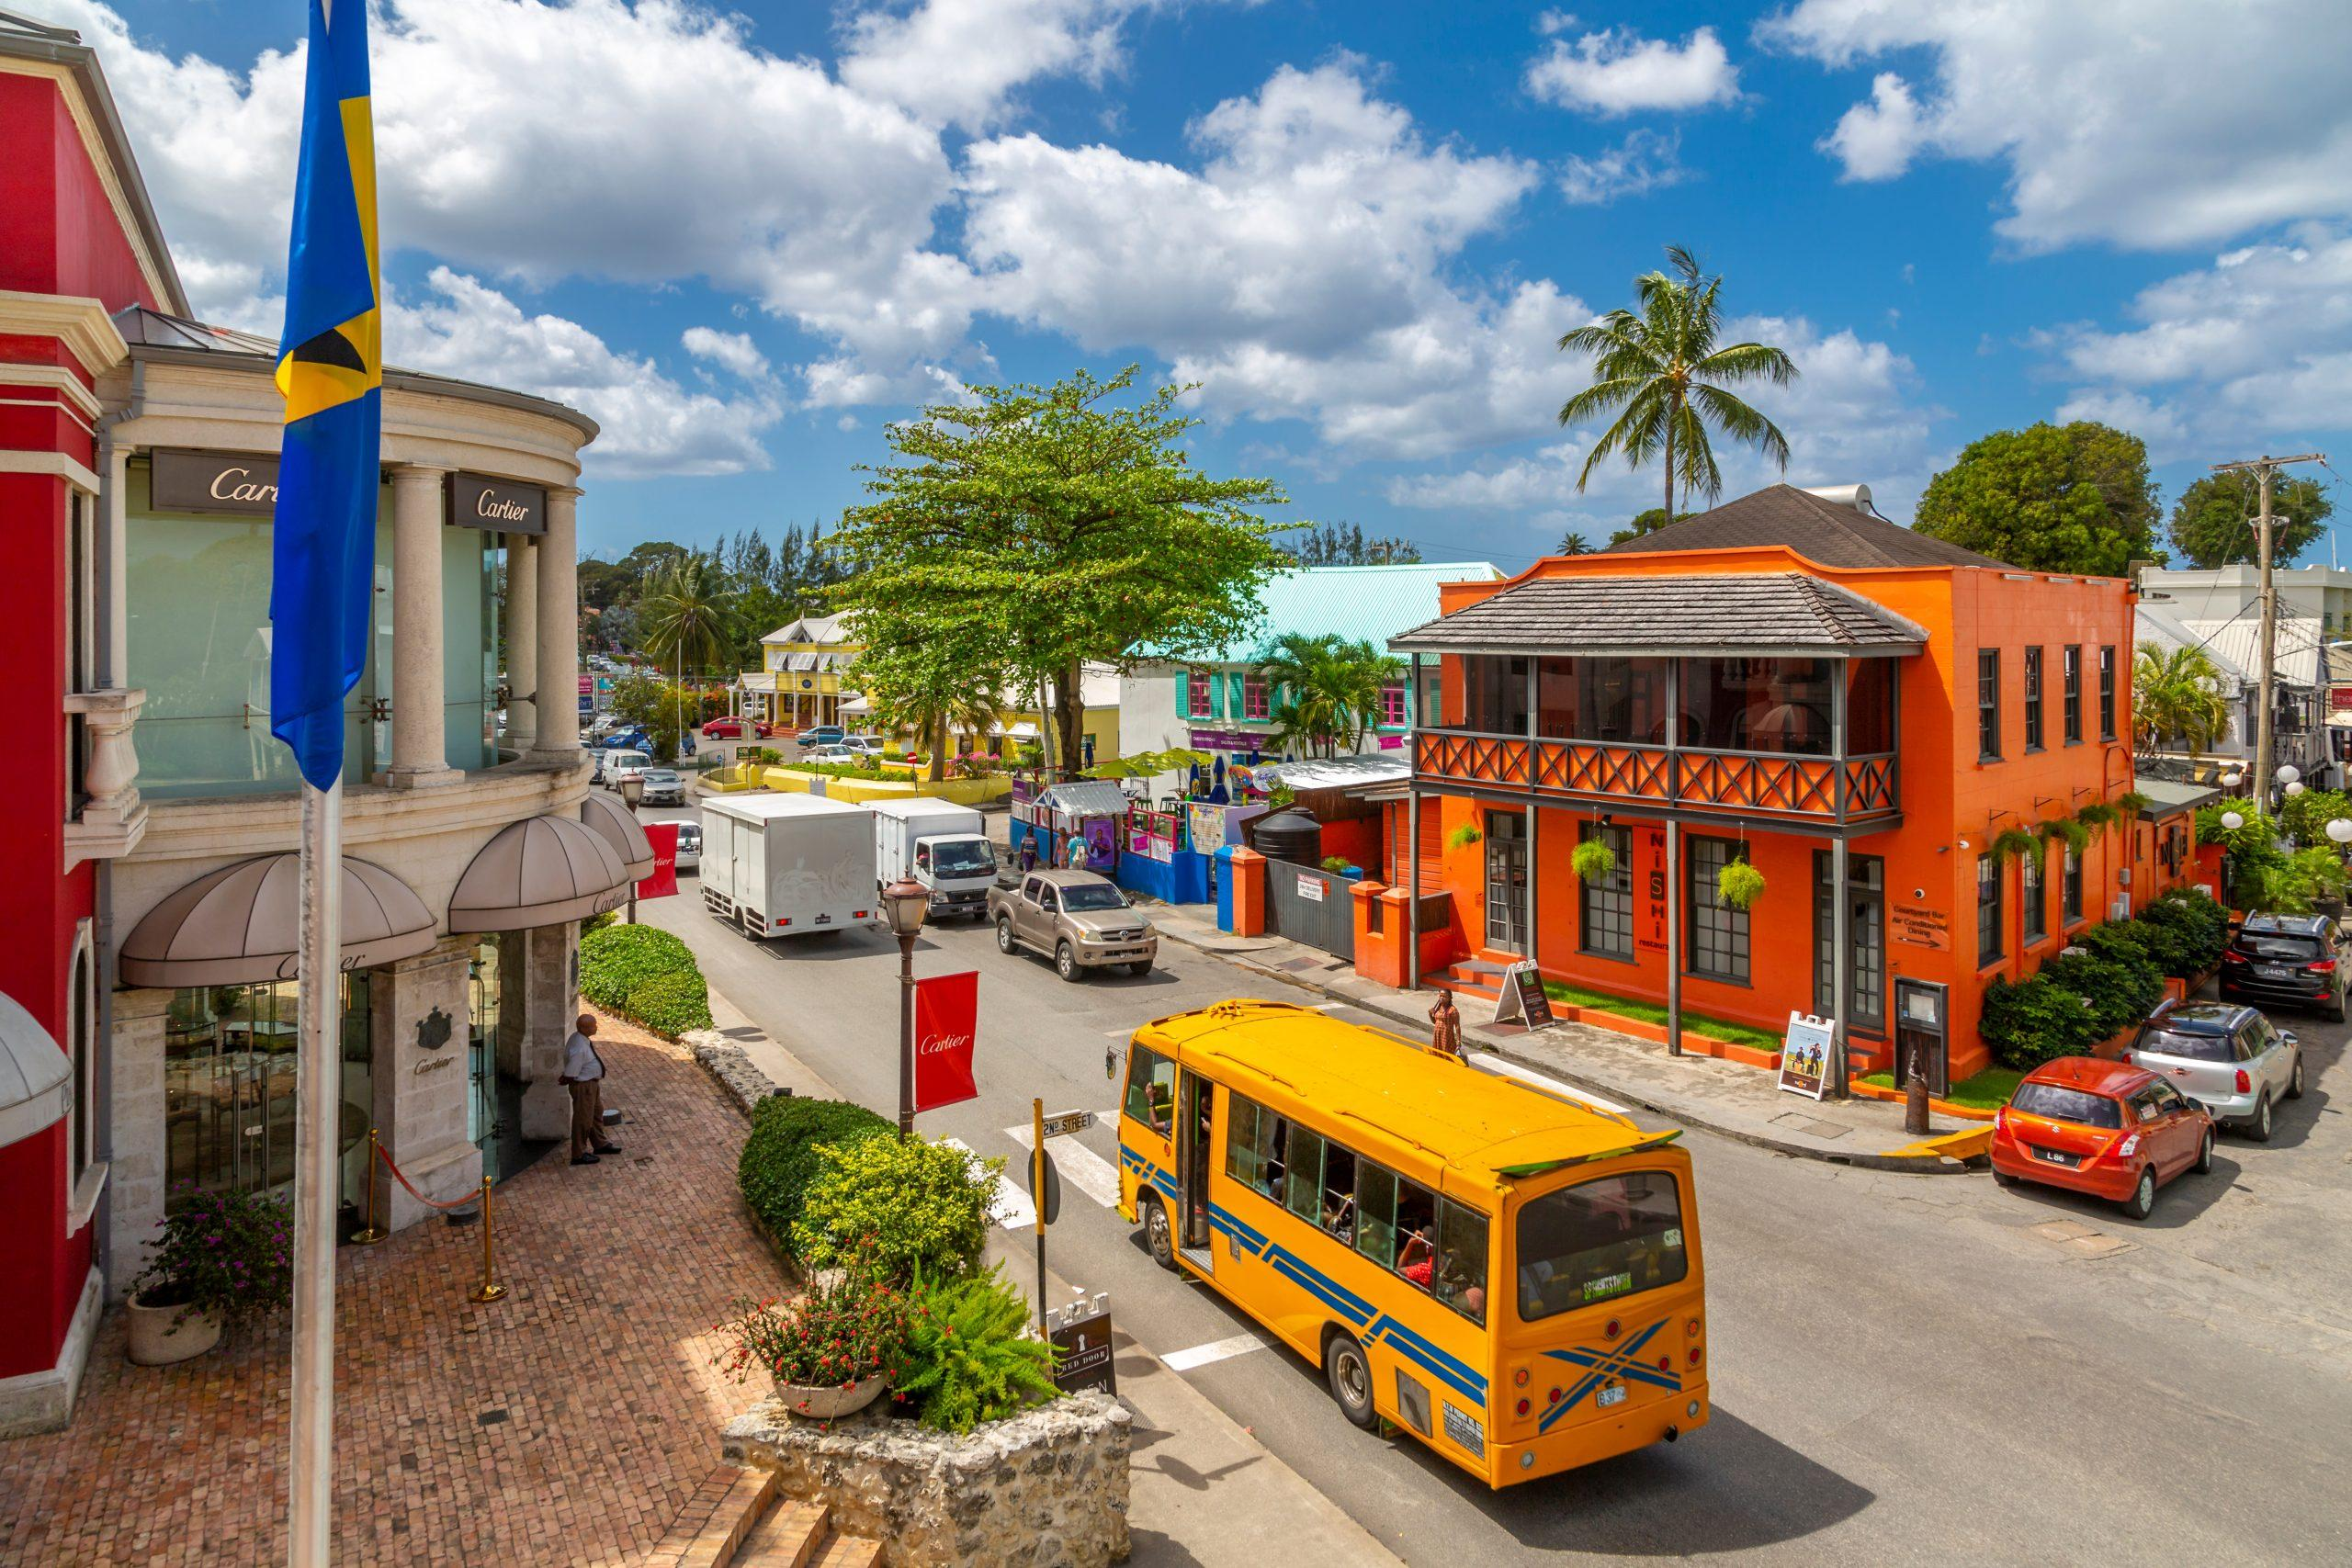 5 Things to do in Holetown, Barbados